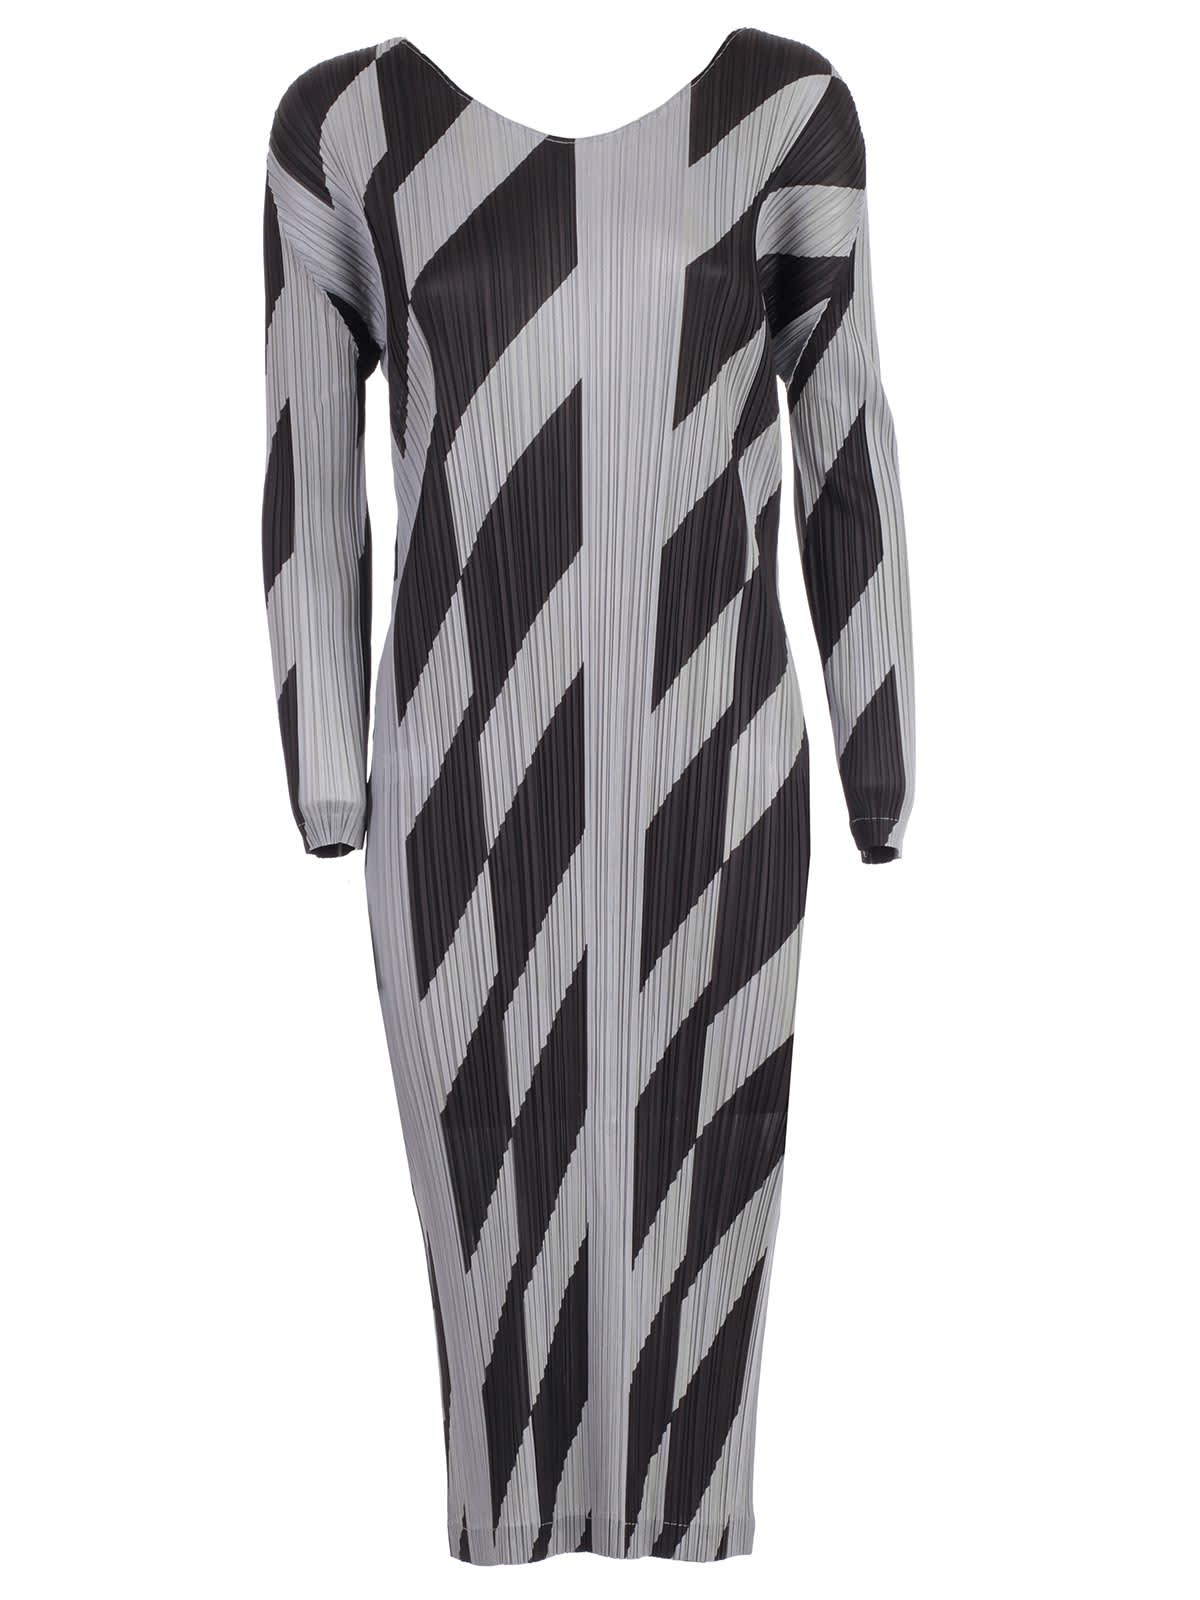 Pleats Please Issey Miyake Dress L & s Crew Neck Diagonal Lines